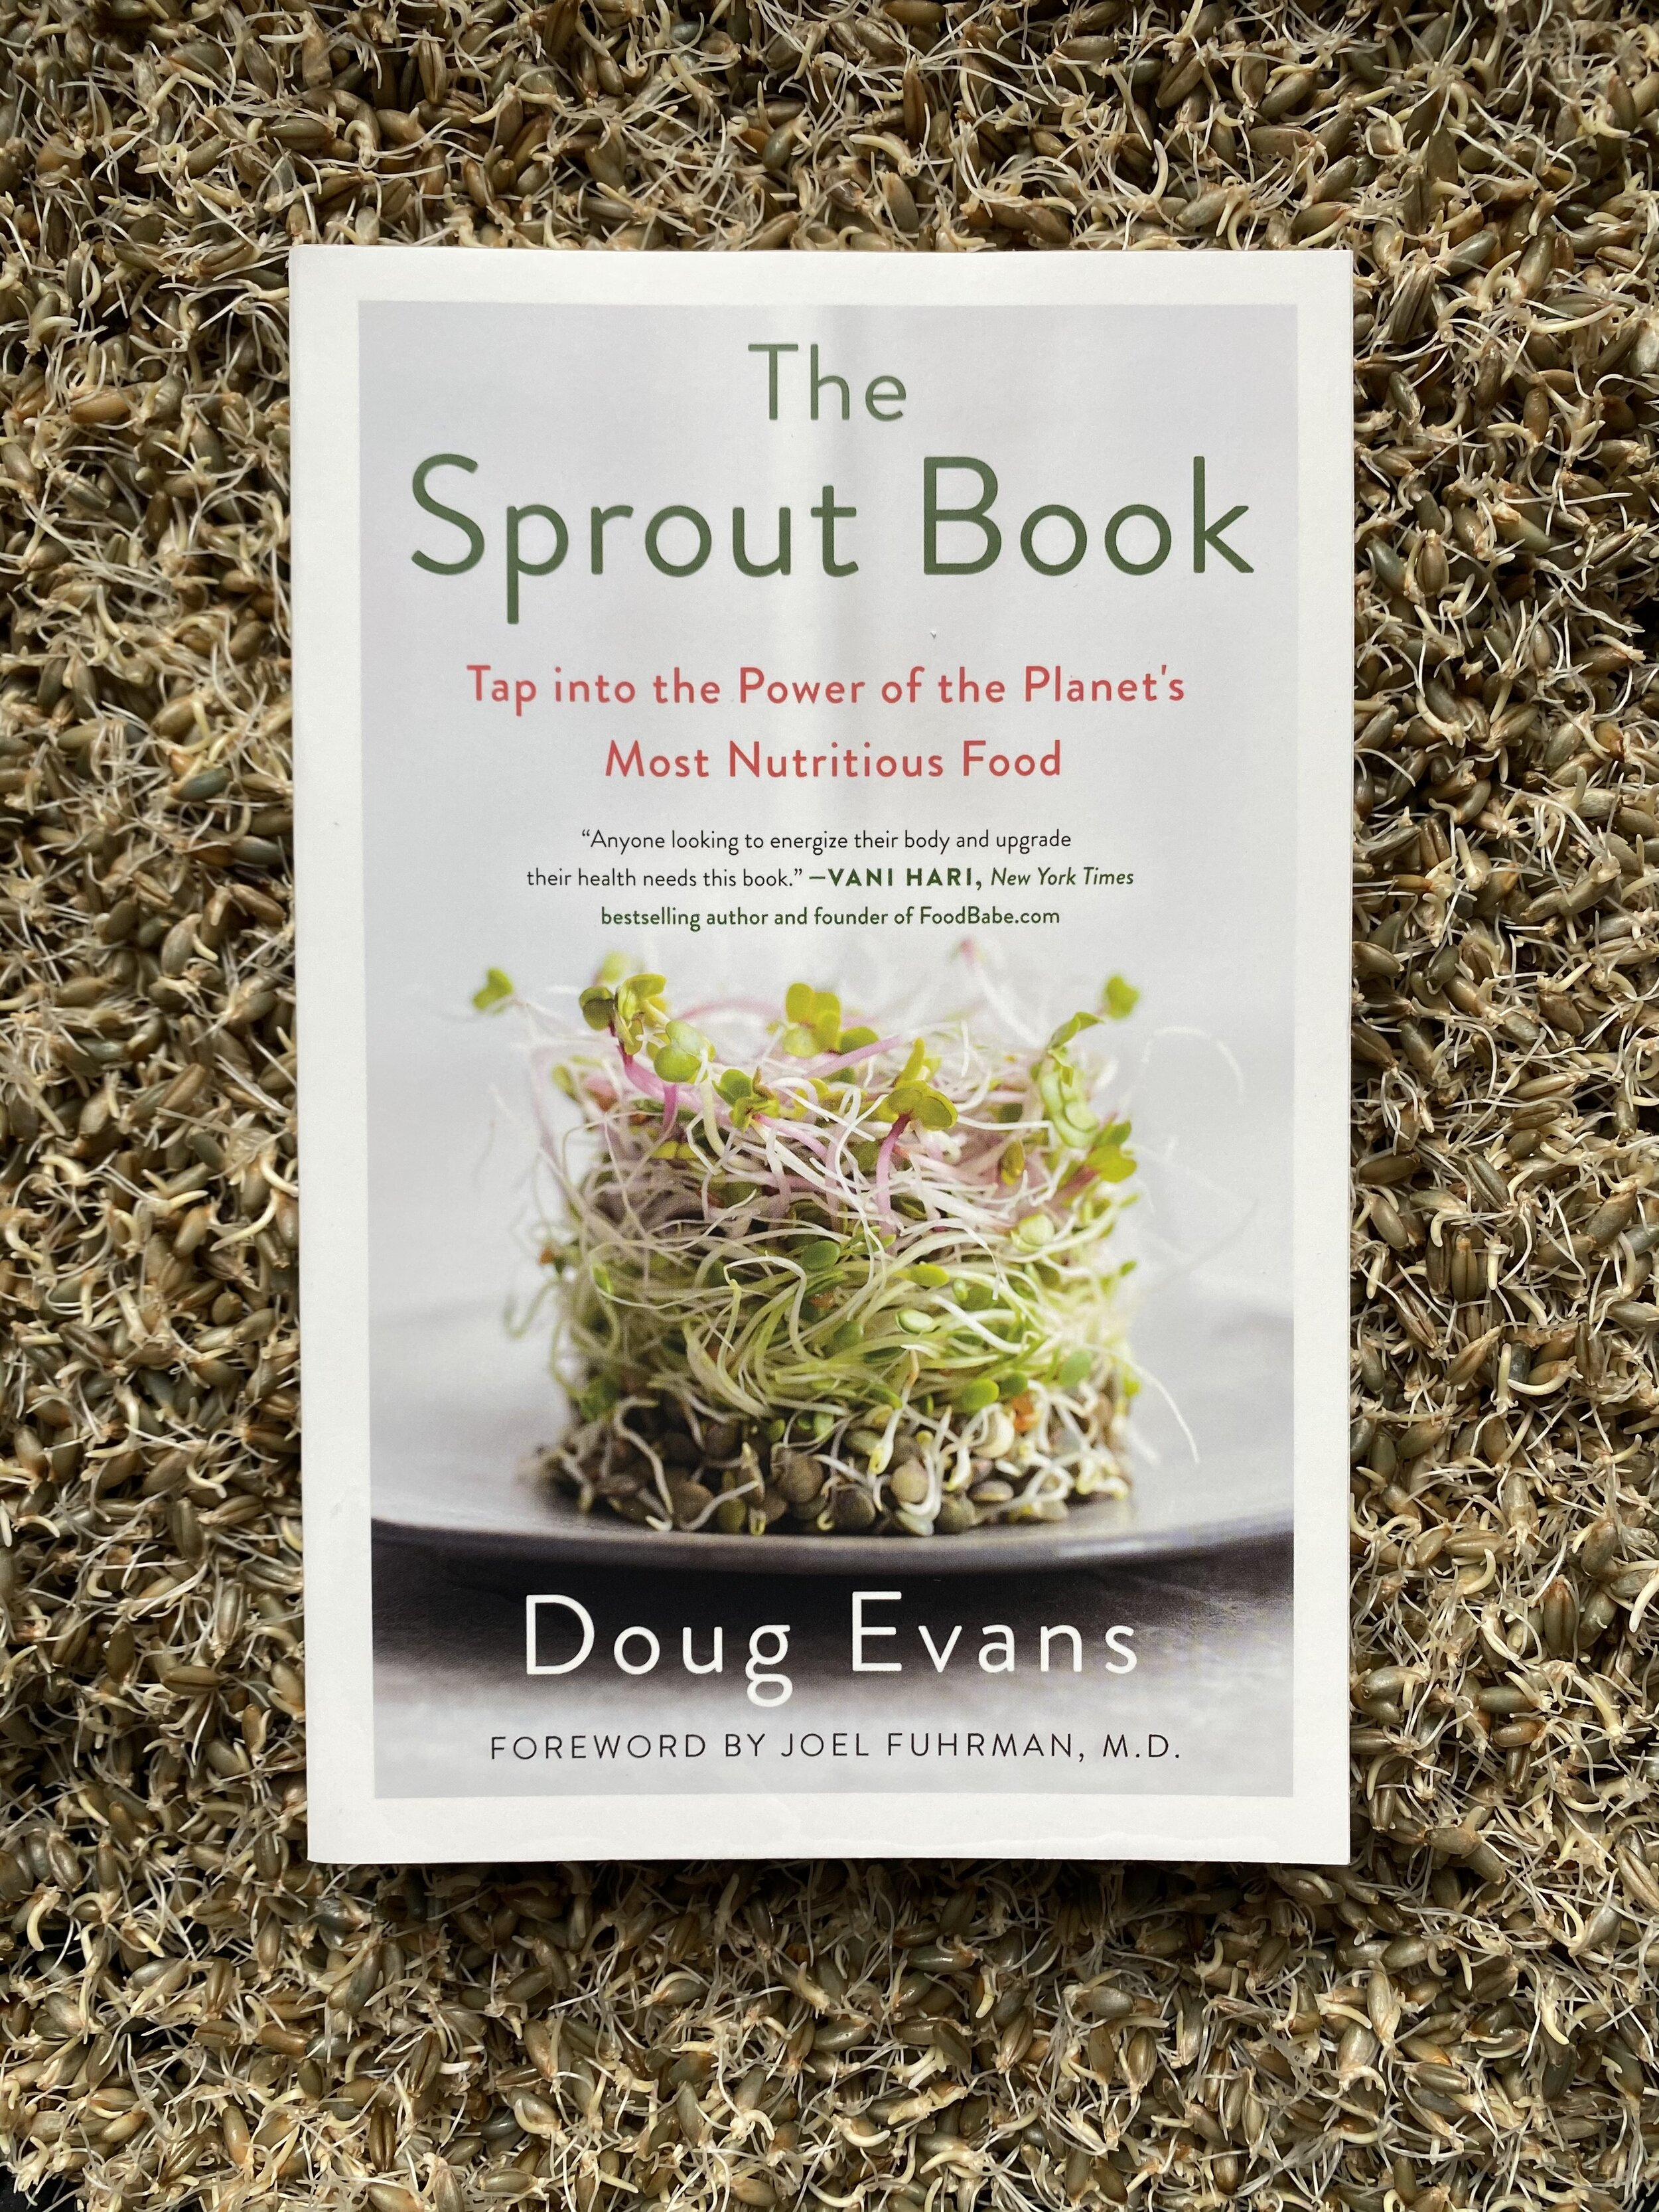 The Sprout Book by Doug Evans